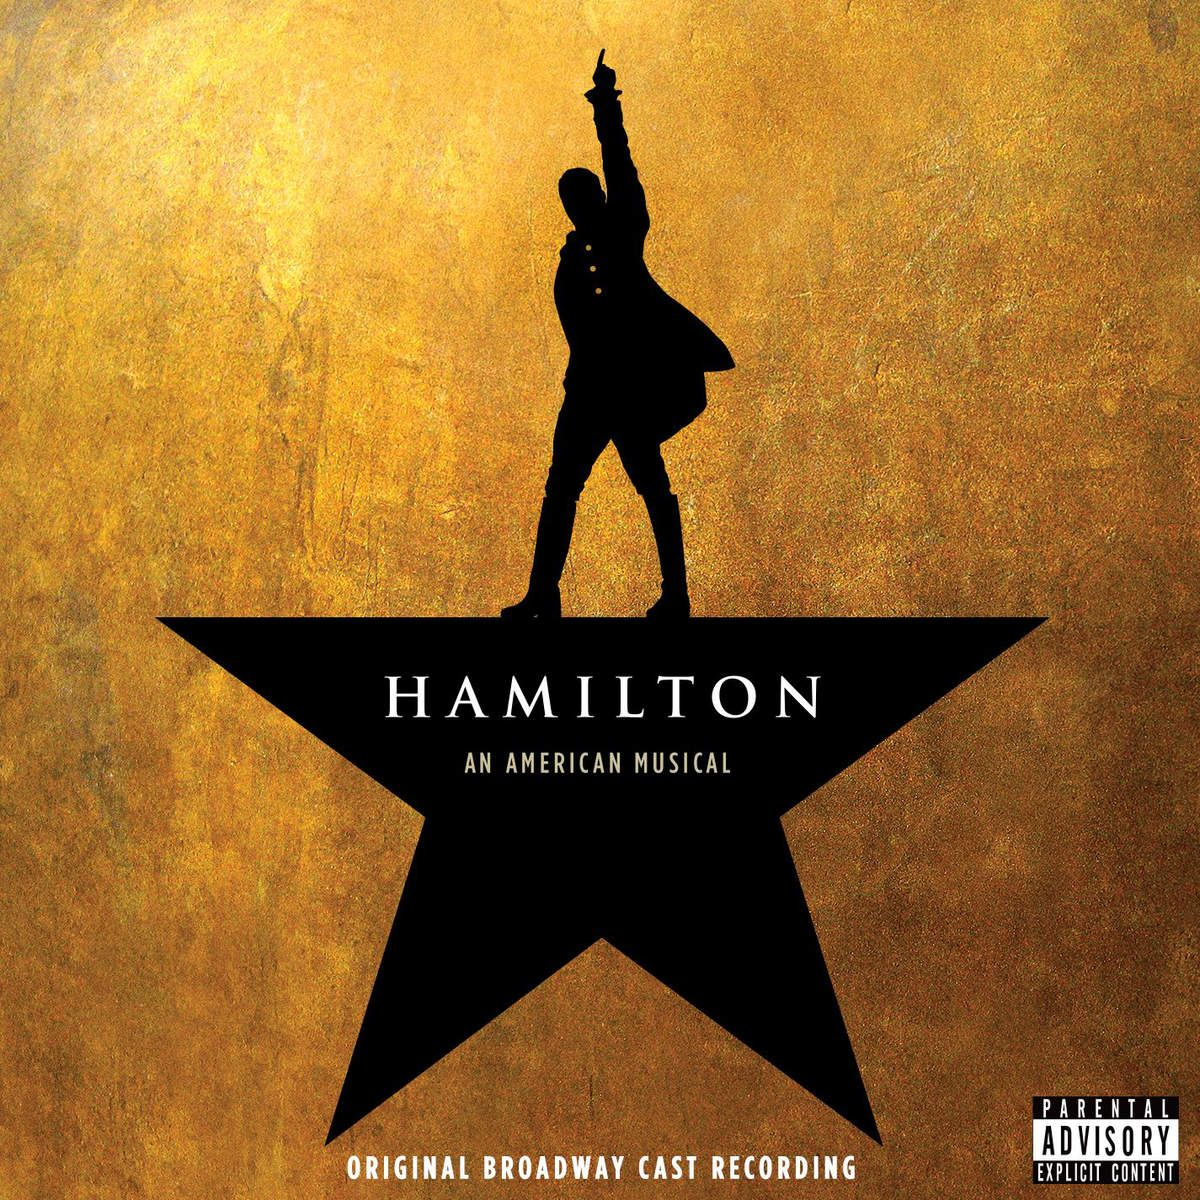 Original Broadway Cast Recording - Hamilton: An American Musical album cover